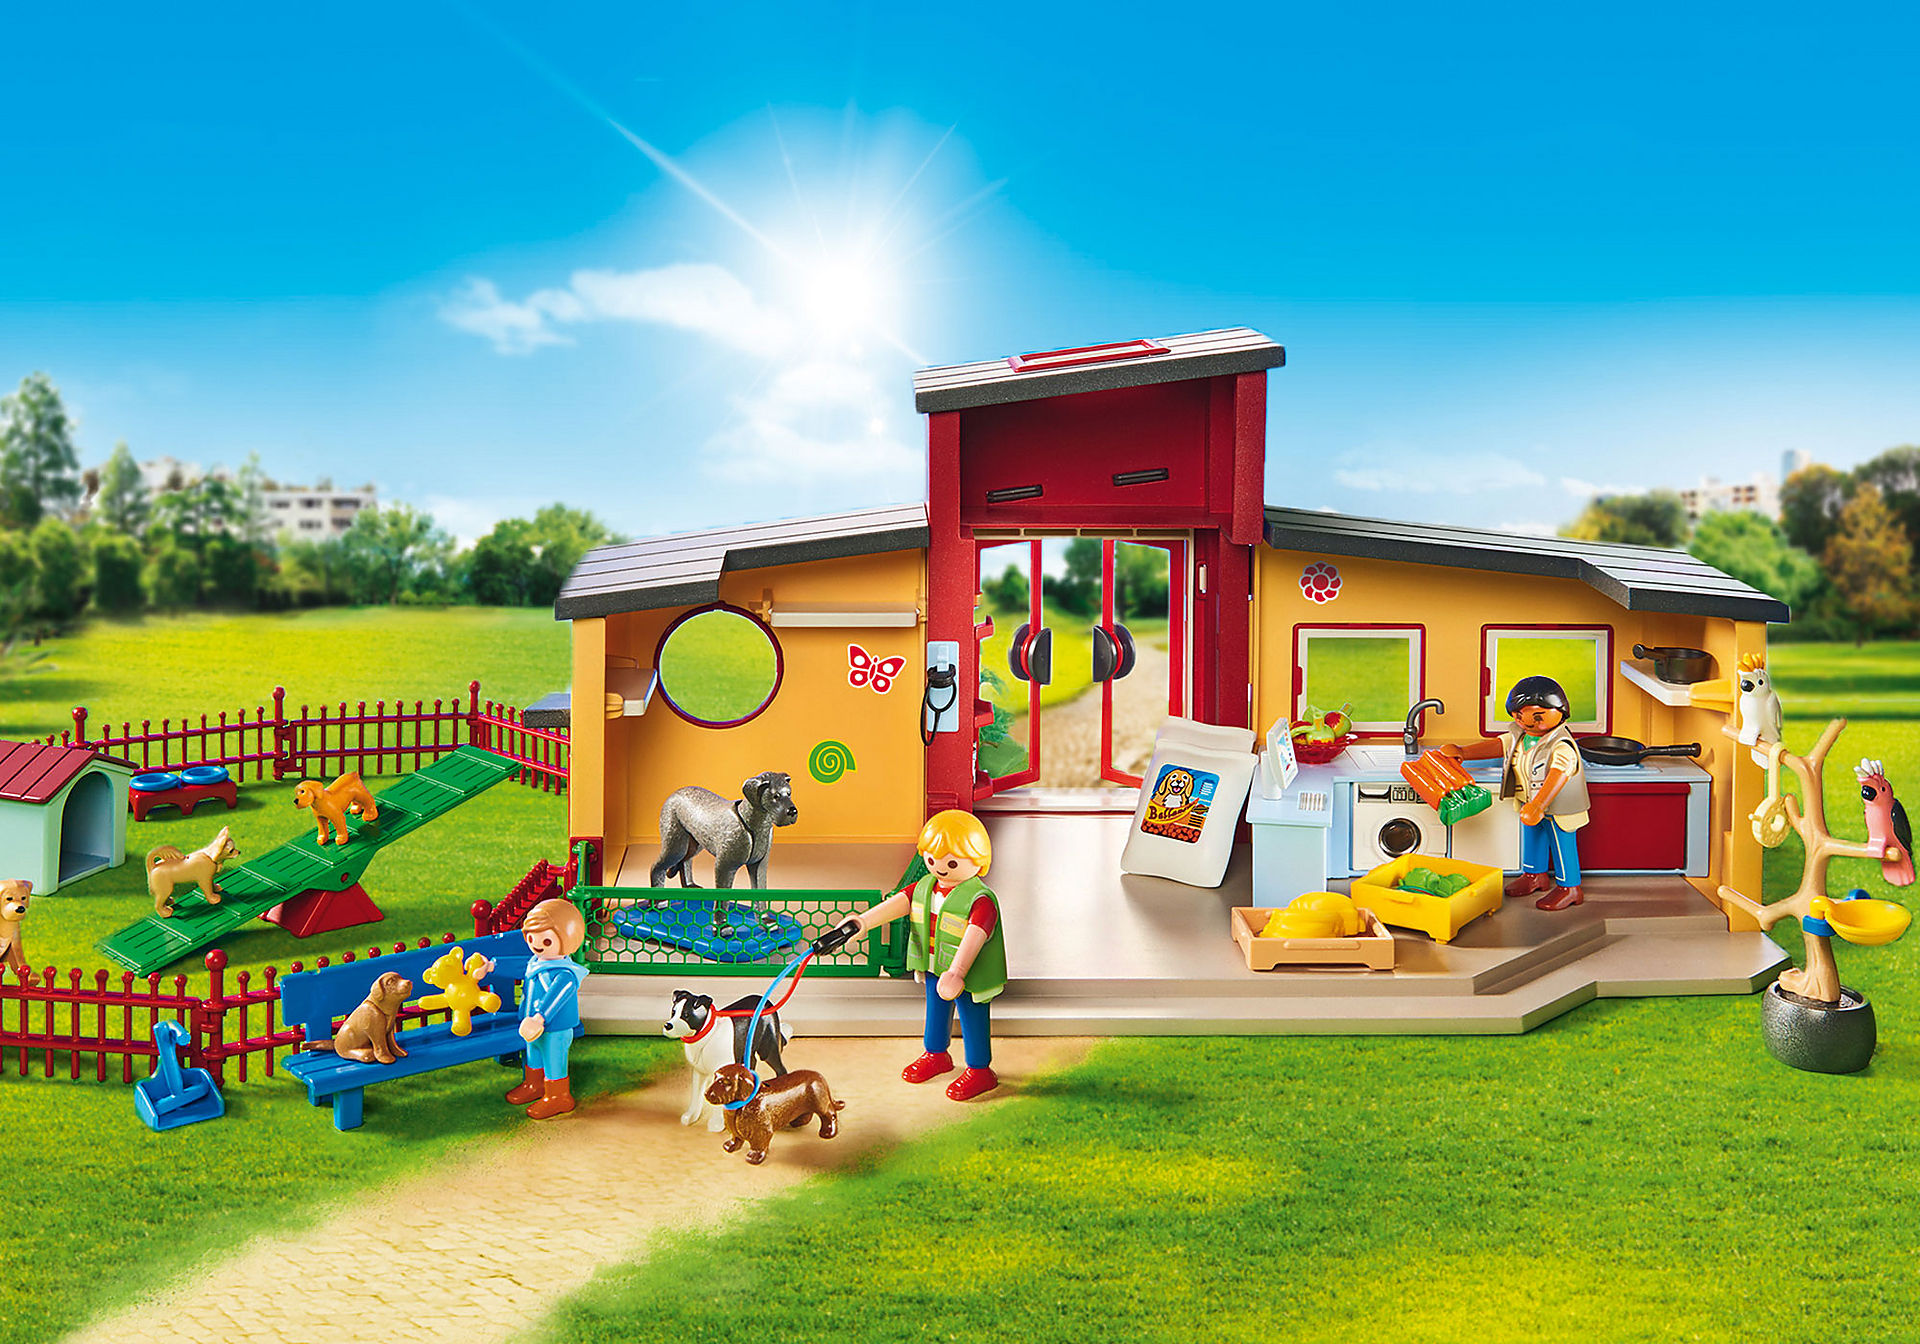 http://media.playmobil.com/i/playmobil/9275_product_extra3/Tiny Paws Pet Hotel